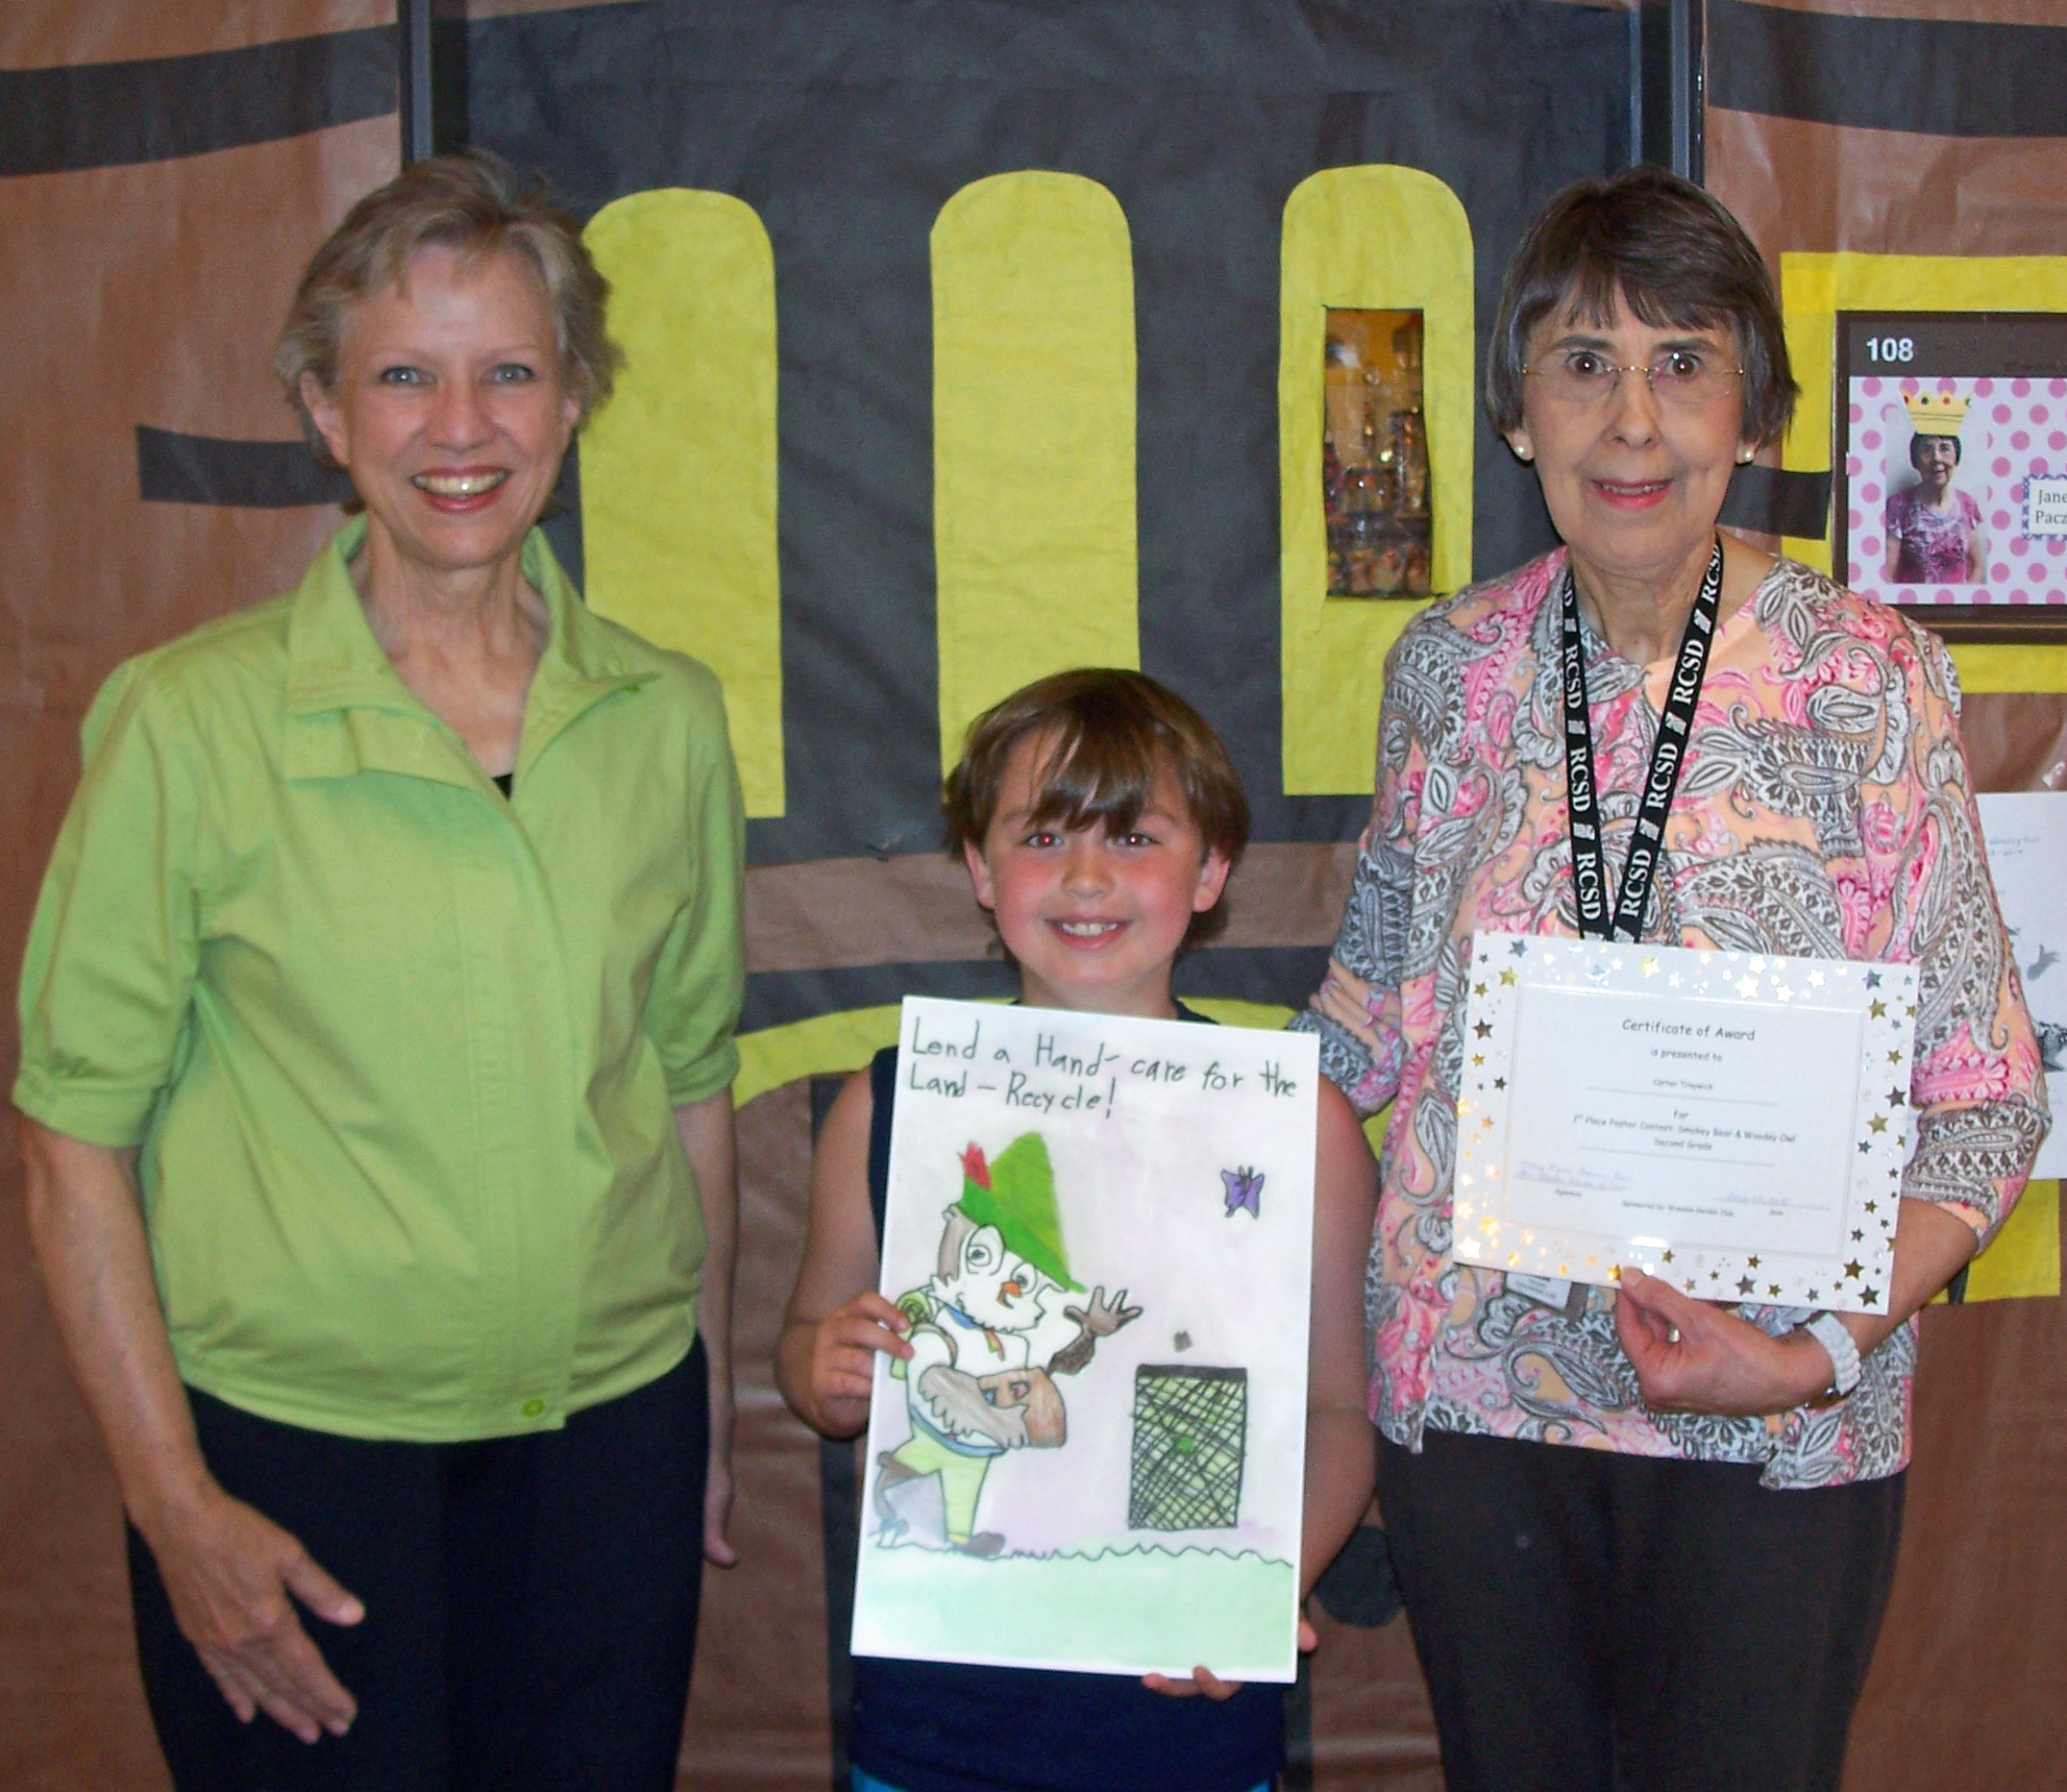 Carter Traywick, second grade Venture student at Stonebridge Elementary School, was the First Place winner at the local and state levels of theSmokeyBearand Woodsy Owl poster contest sponsored by the Brandon Garden Club (BGC), The Garden Clubs of Mississippi, Inc., to increase students' awareness of fire prevention and basic environmental conservation principles.SmokeyBearteaches children and adults to be careful with campfires, barbecues, trash fires, and matches. Woodsy Owl encourages children to join him by taking an active role in caring for the land through recycling, reusing, and reducing waste; planting and caring for trees; using resources wisely (such as not wasting water or electricity); not littering; and generally caring for the planet.  Pictured (l to r): BGC Chairman Joan Alliston, Carter Traywick, and Venture teacher Janet Paczak.